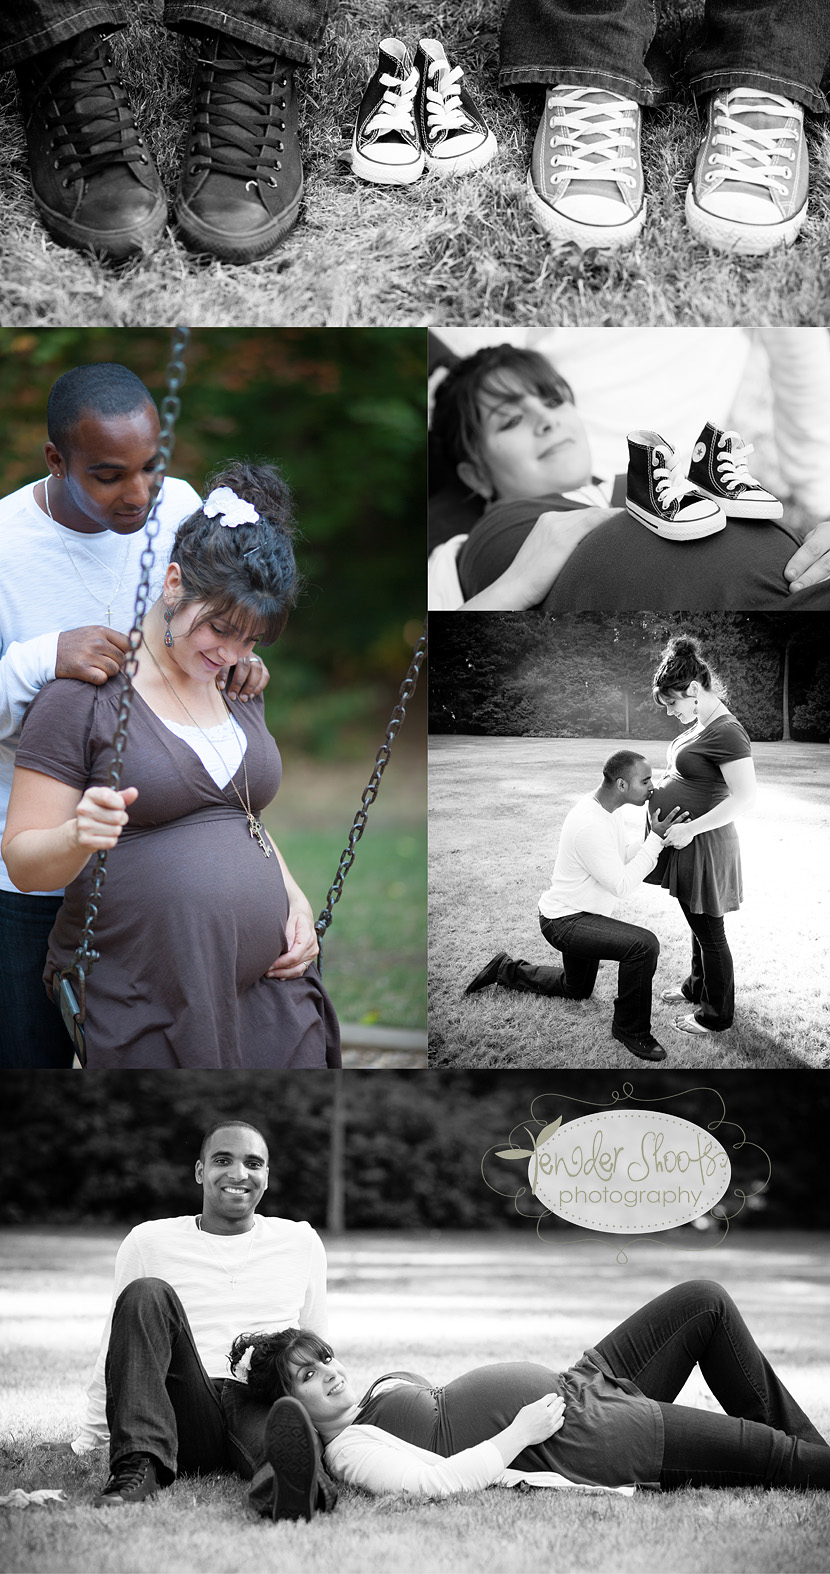 Tender Shoots Maternity Photography, Surrey BC